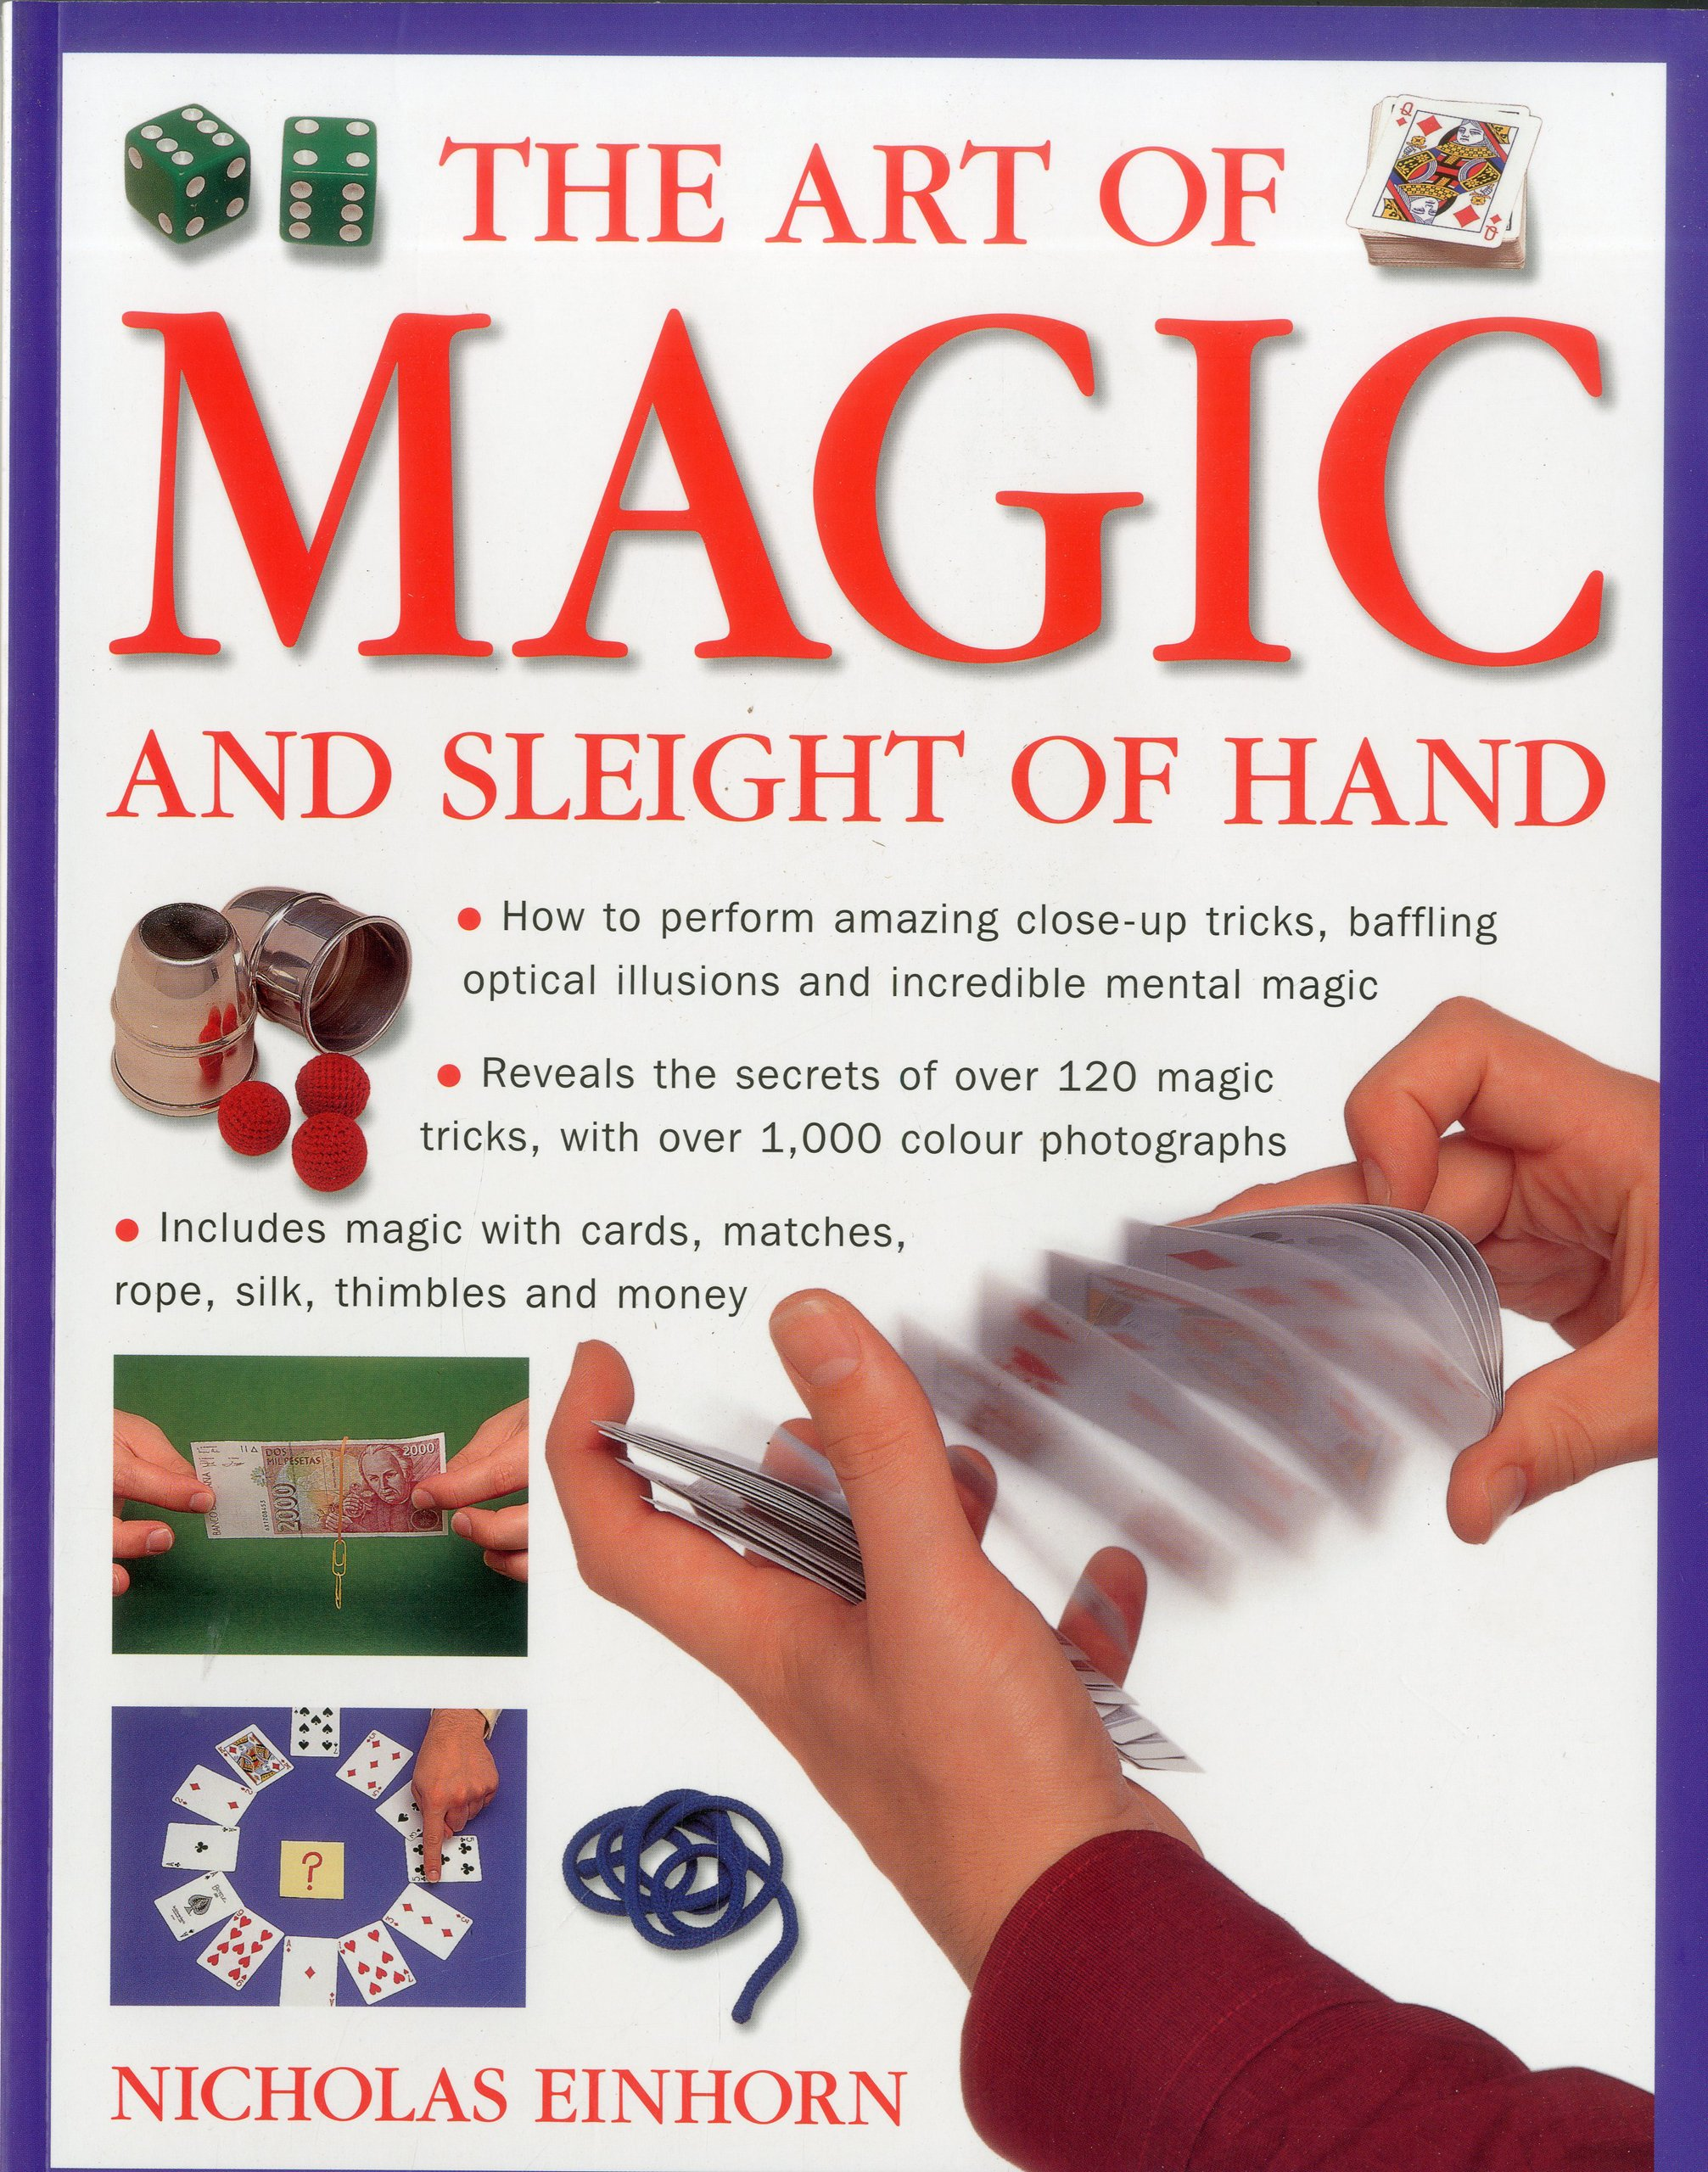 Art of Magic and Sleight of Hand: How to perform amazing close-up tricks,  baffling optical illusions and incredible mental magic.: Einhorn, Nicholas:  9781780190563: Amazon.com: Books